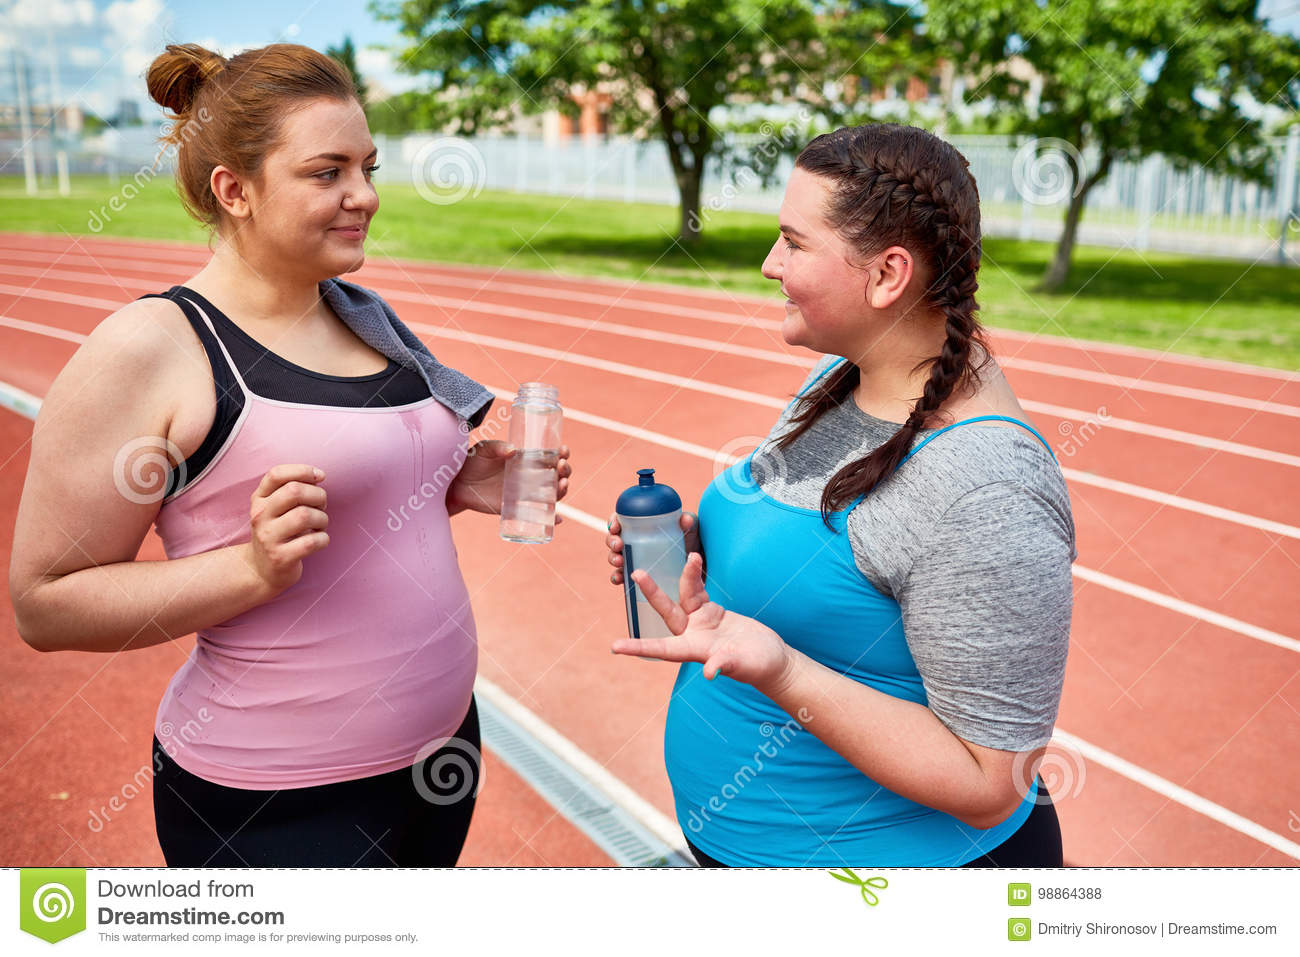 Refreshment and talk stock photo  Image of talking, workout - 98864388